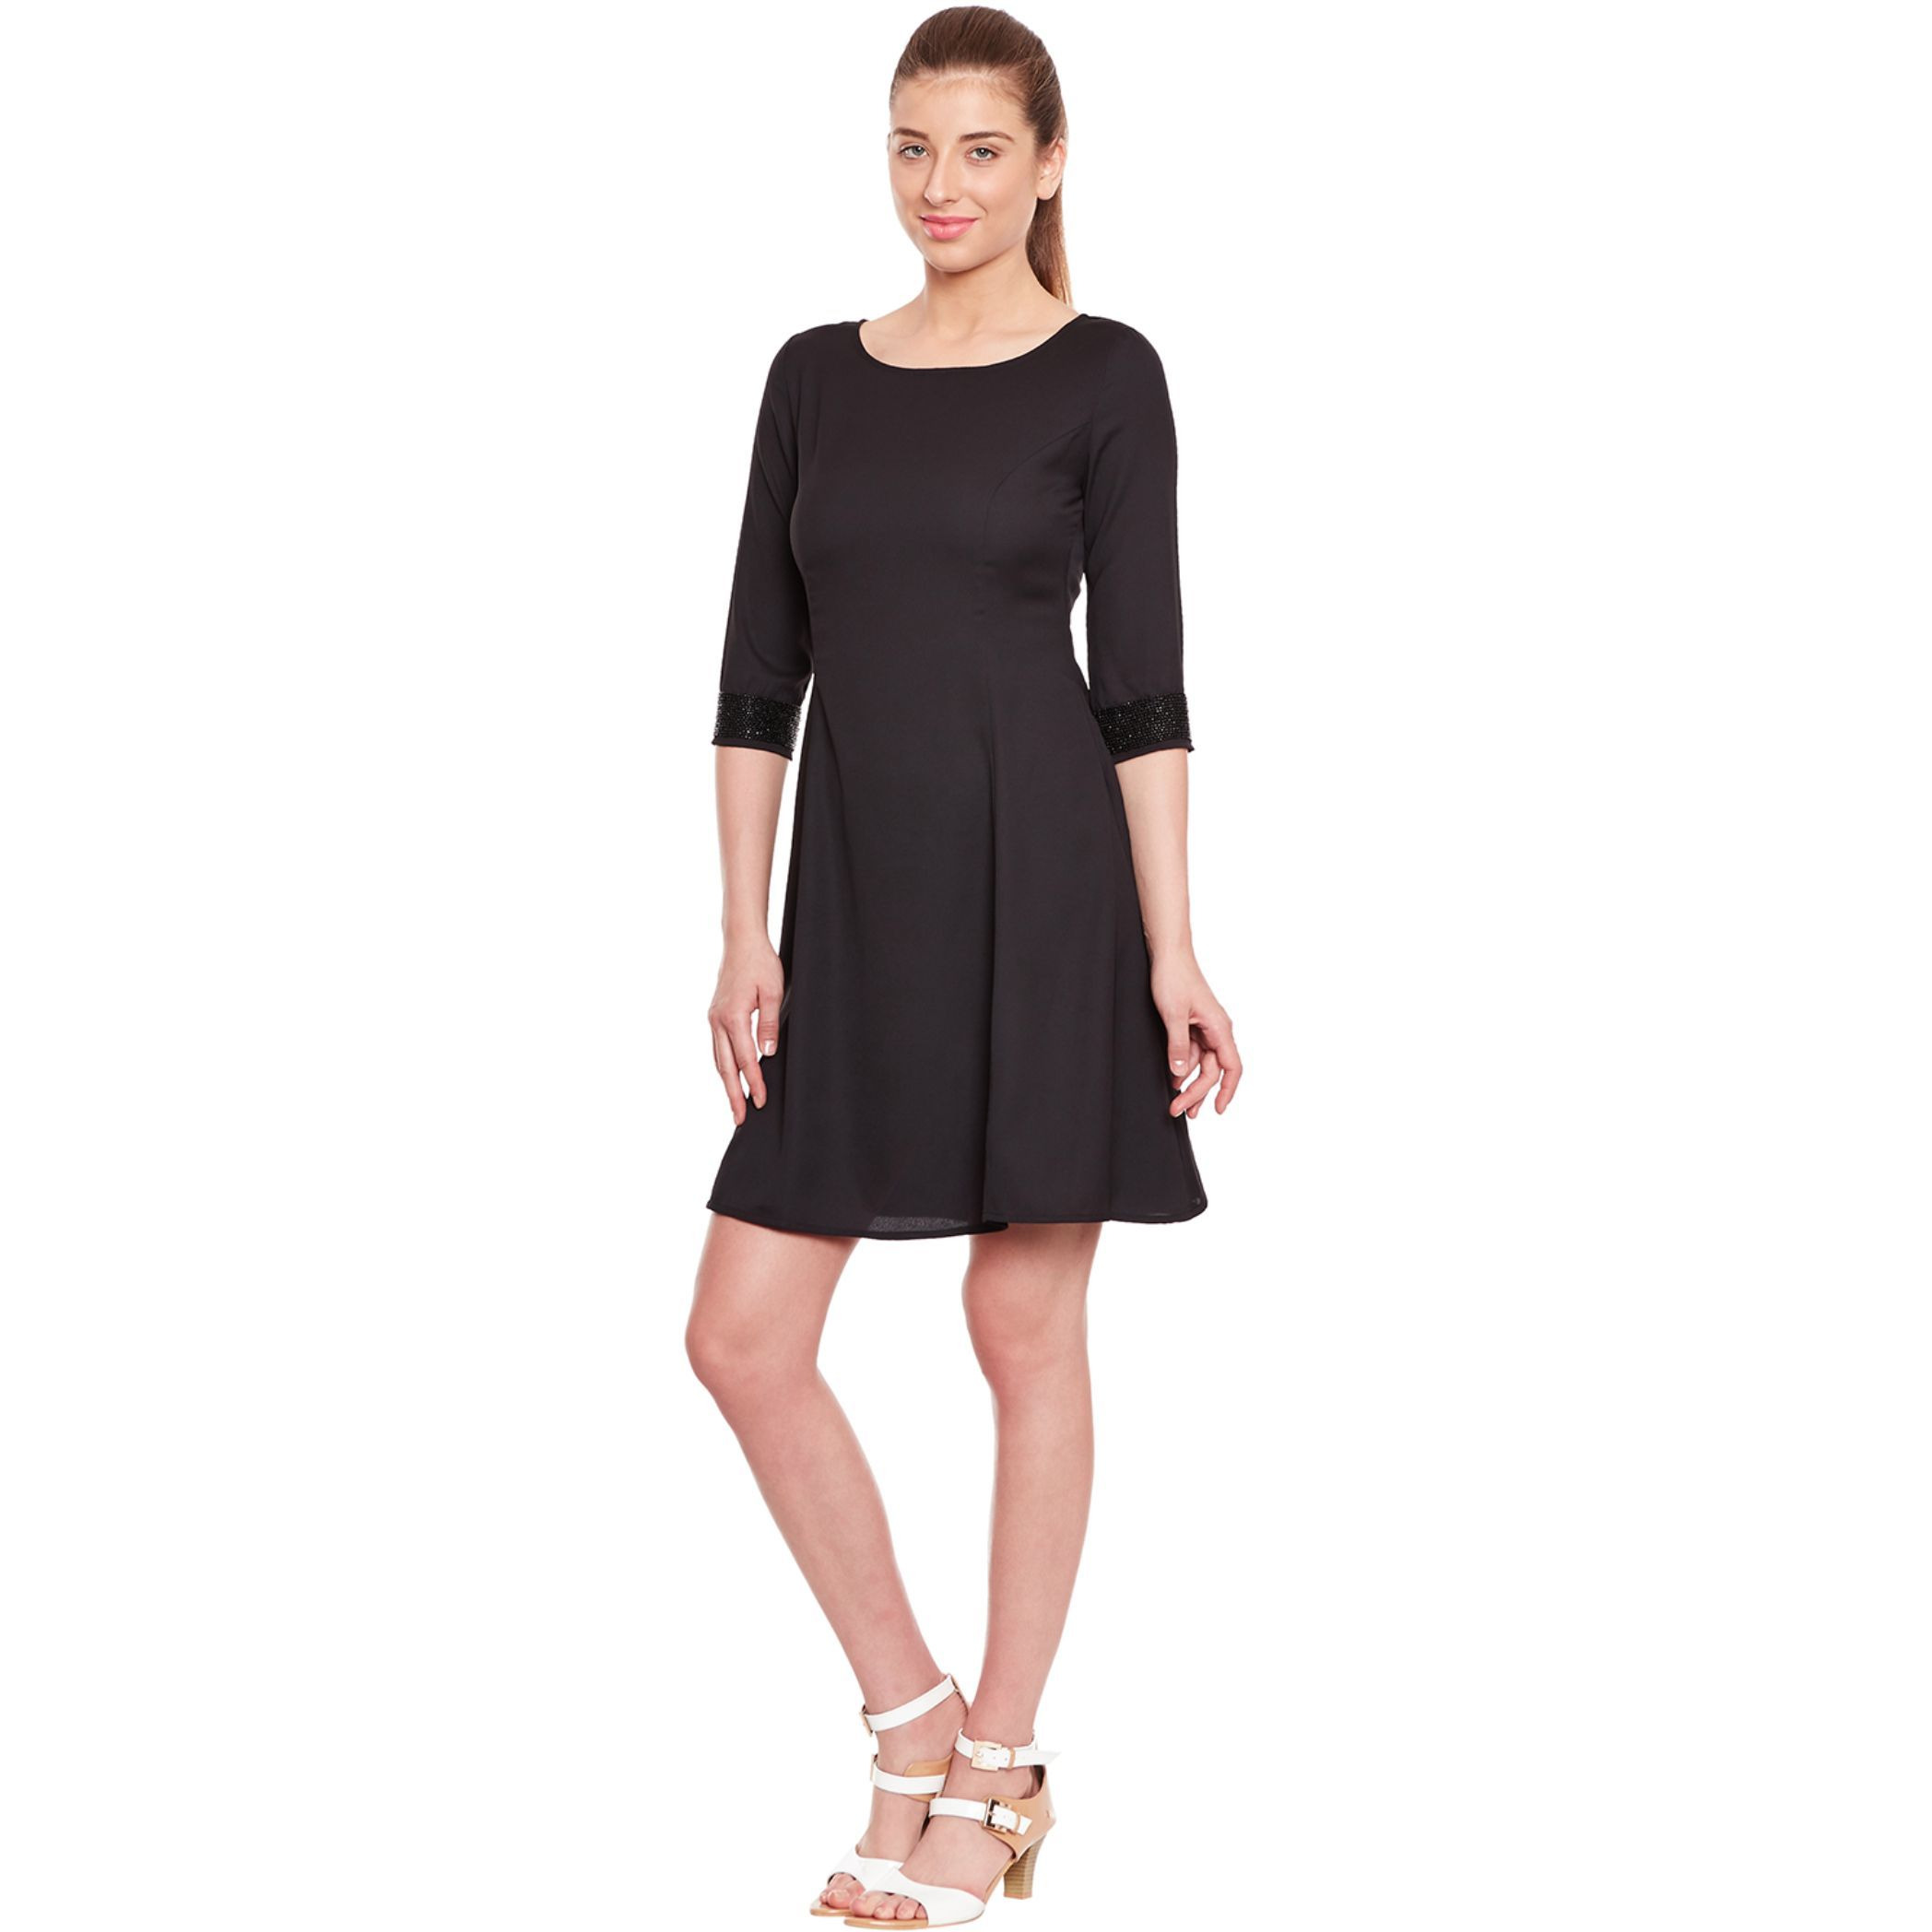 Black Dress With Emblishment At Cuff